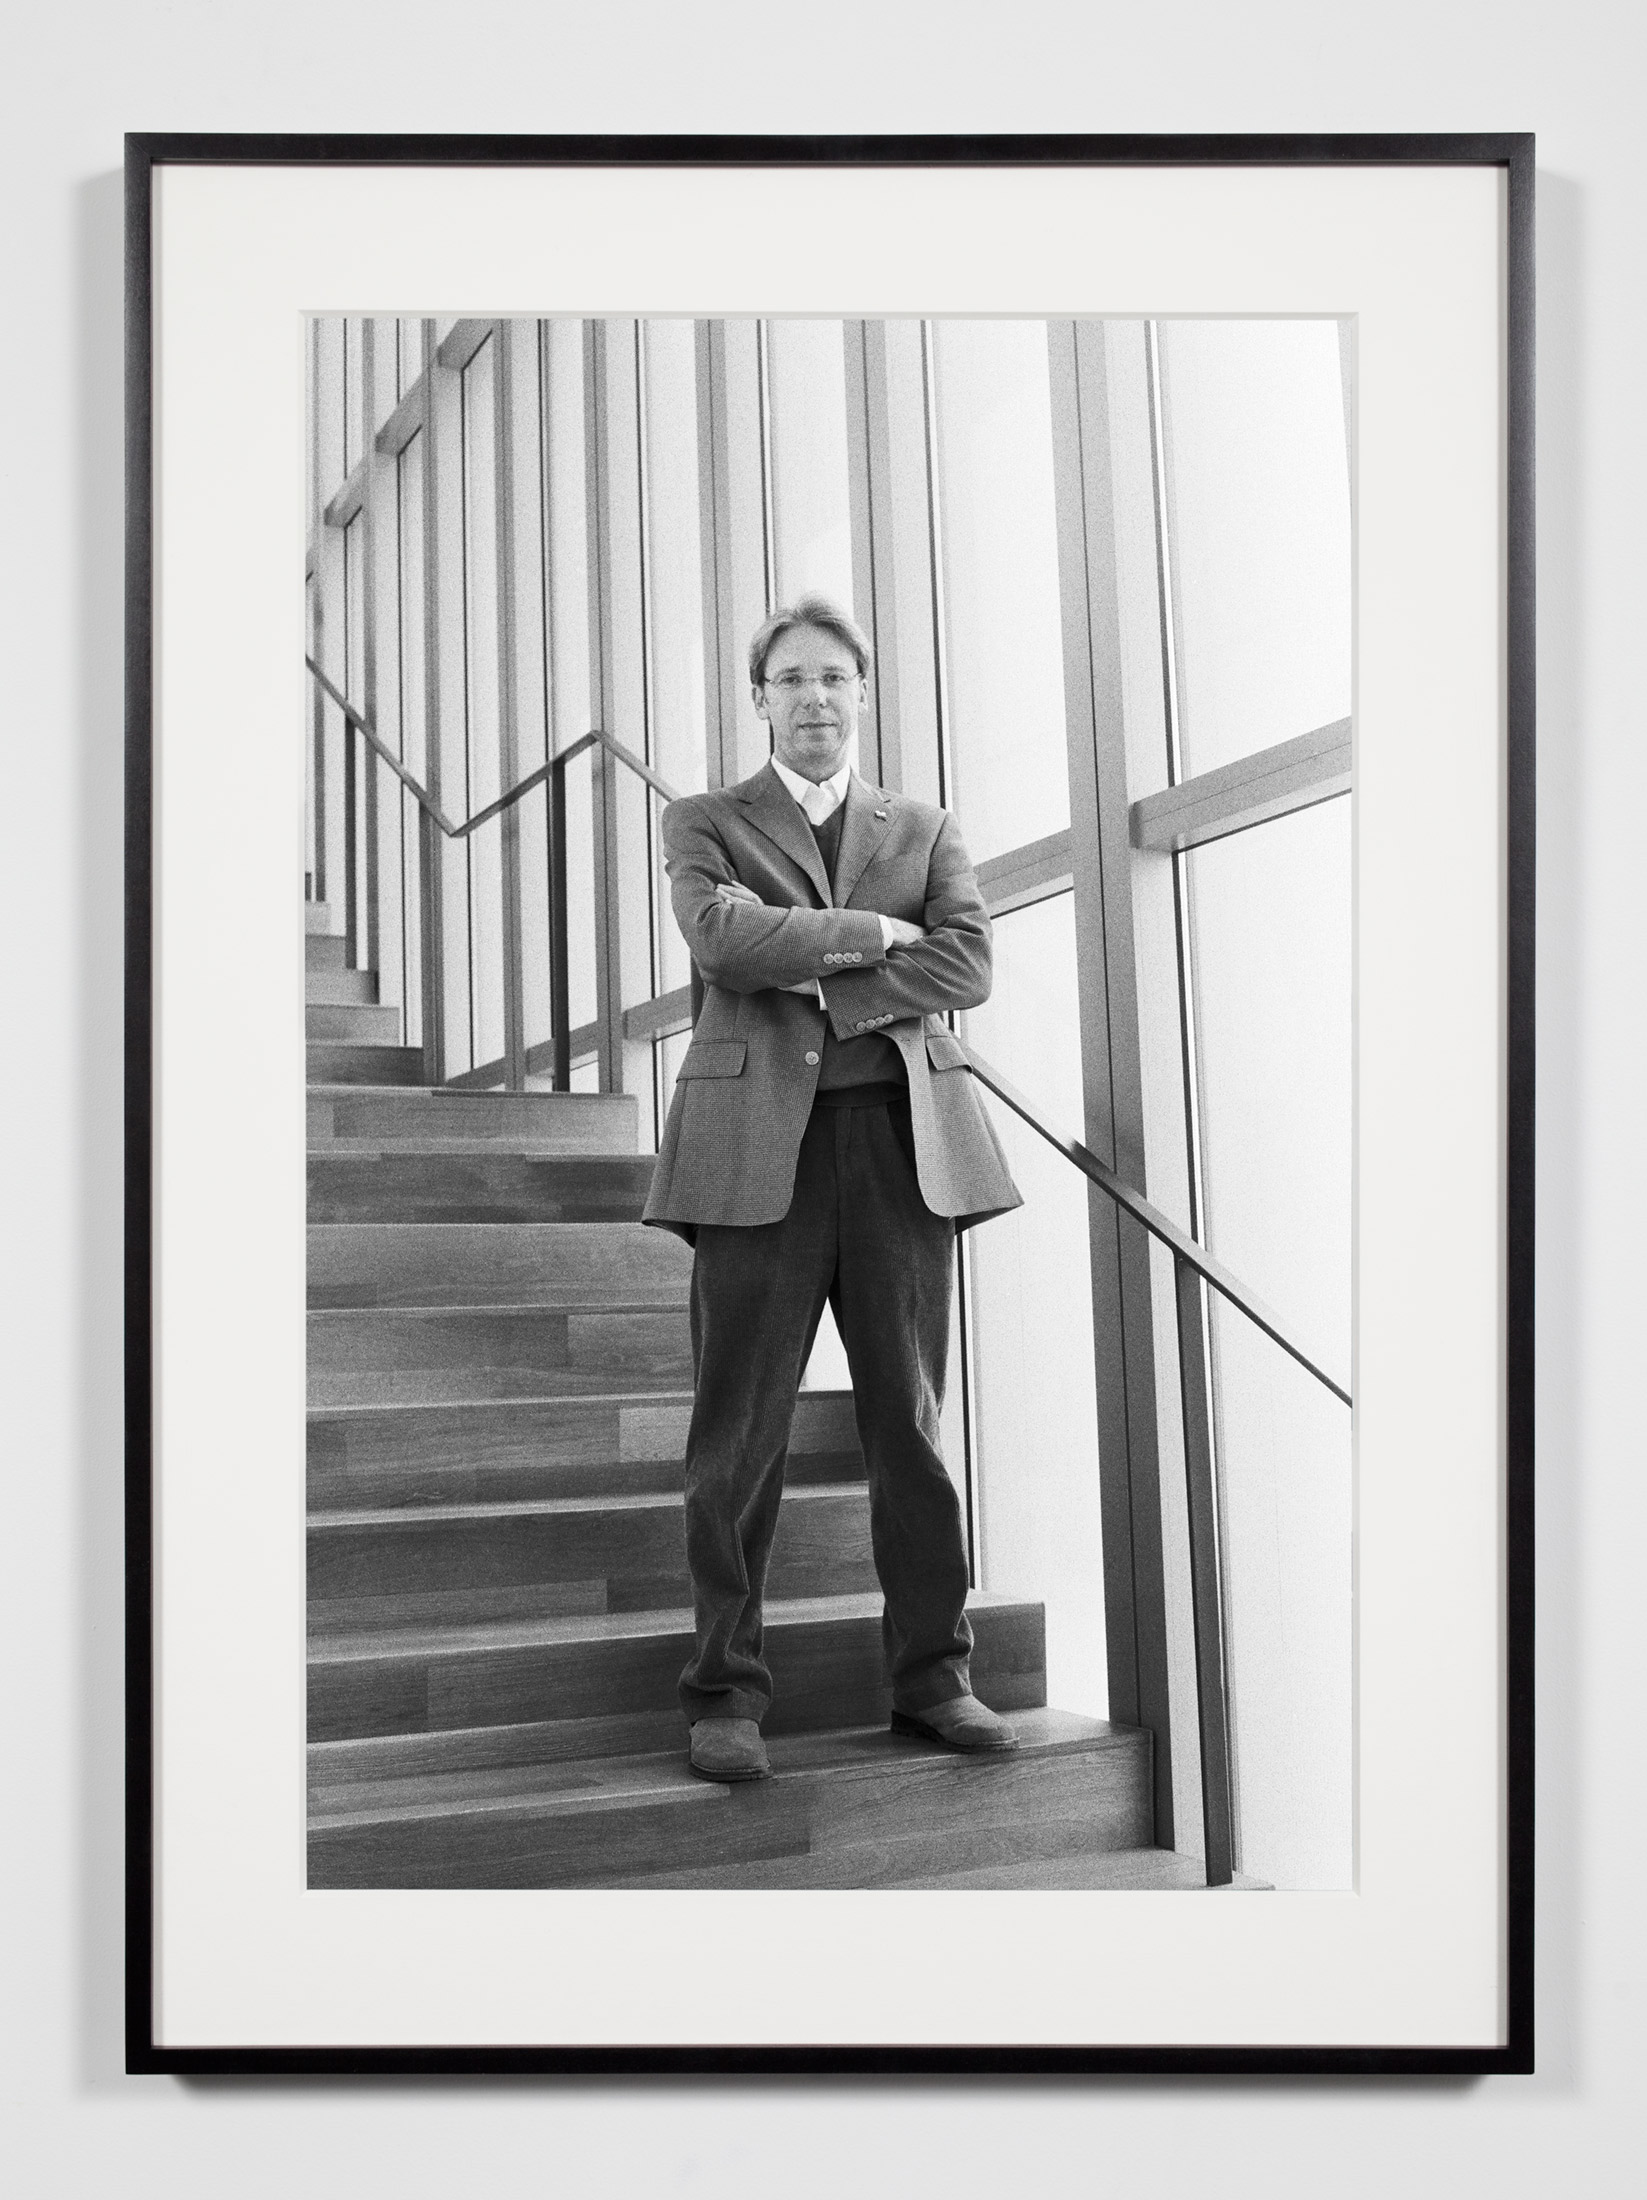 University Museum Director, Ann Arbor, Michigan, March 28, 2009    2011   Epson Ultrachrome K3 archival ink jet print on Hahnemühle Photo Rag paper  36 3/8 x 26 3/8 inches   Industrial Portraits, 2008–